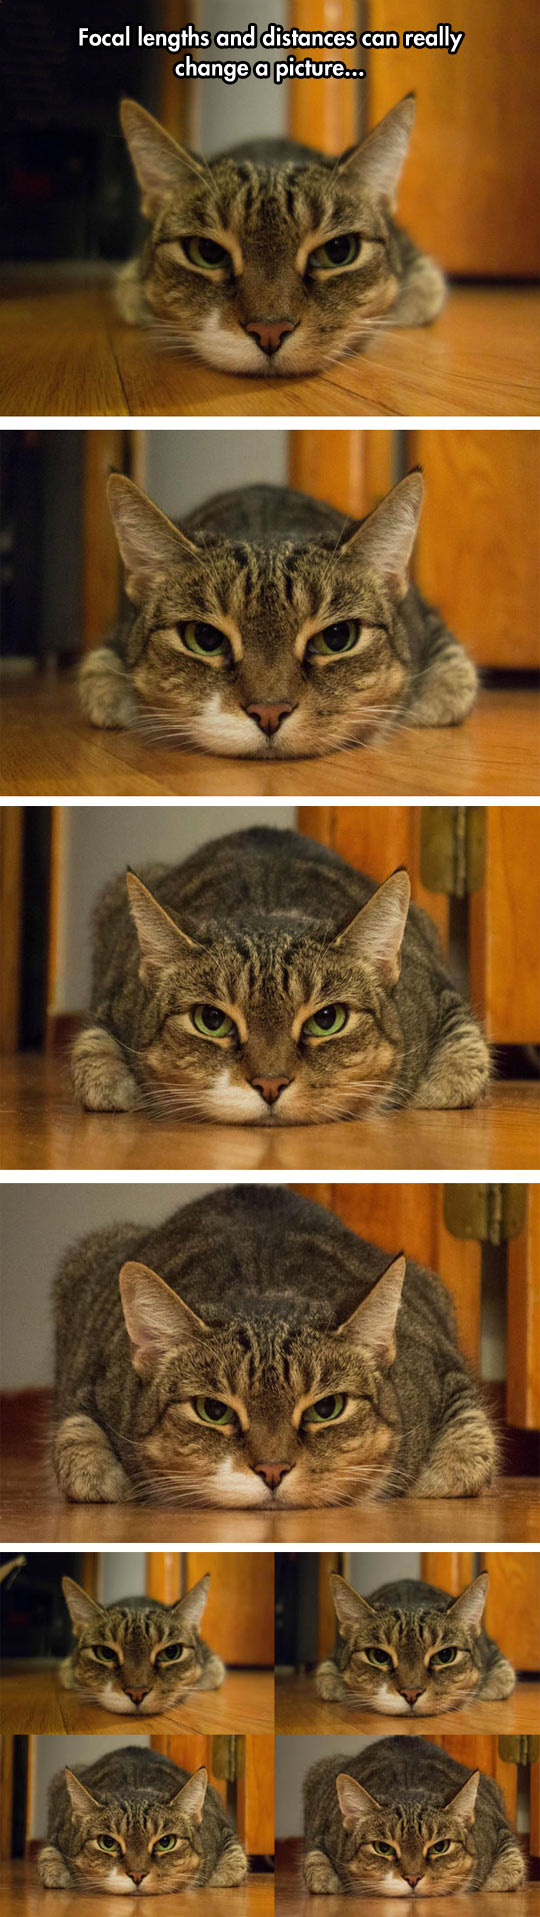 cool-cat-focal-lengths-fat